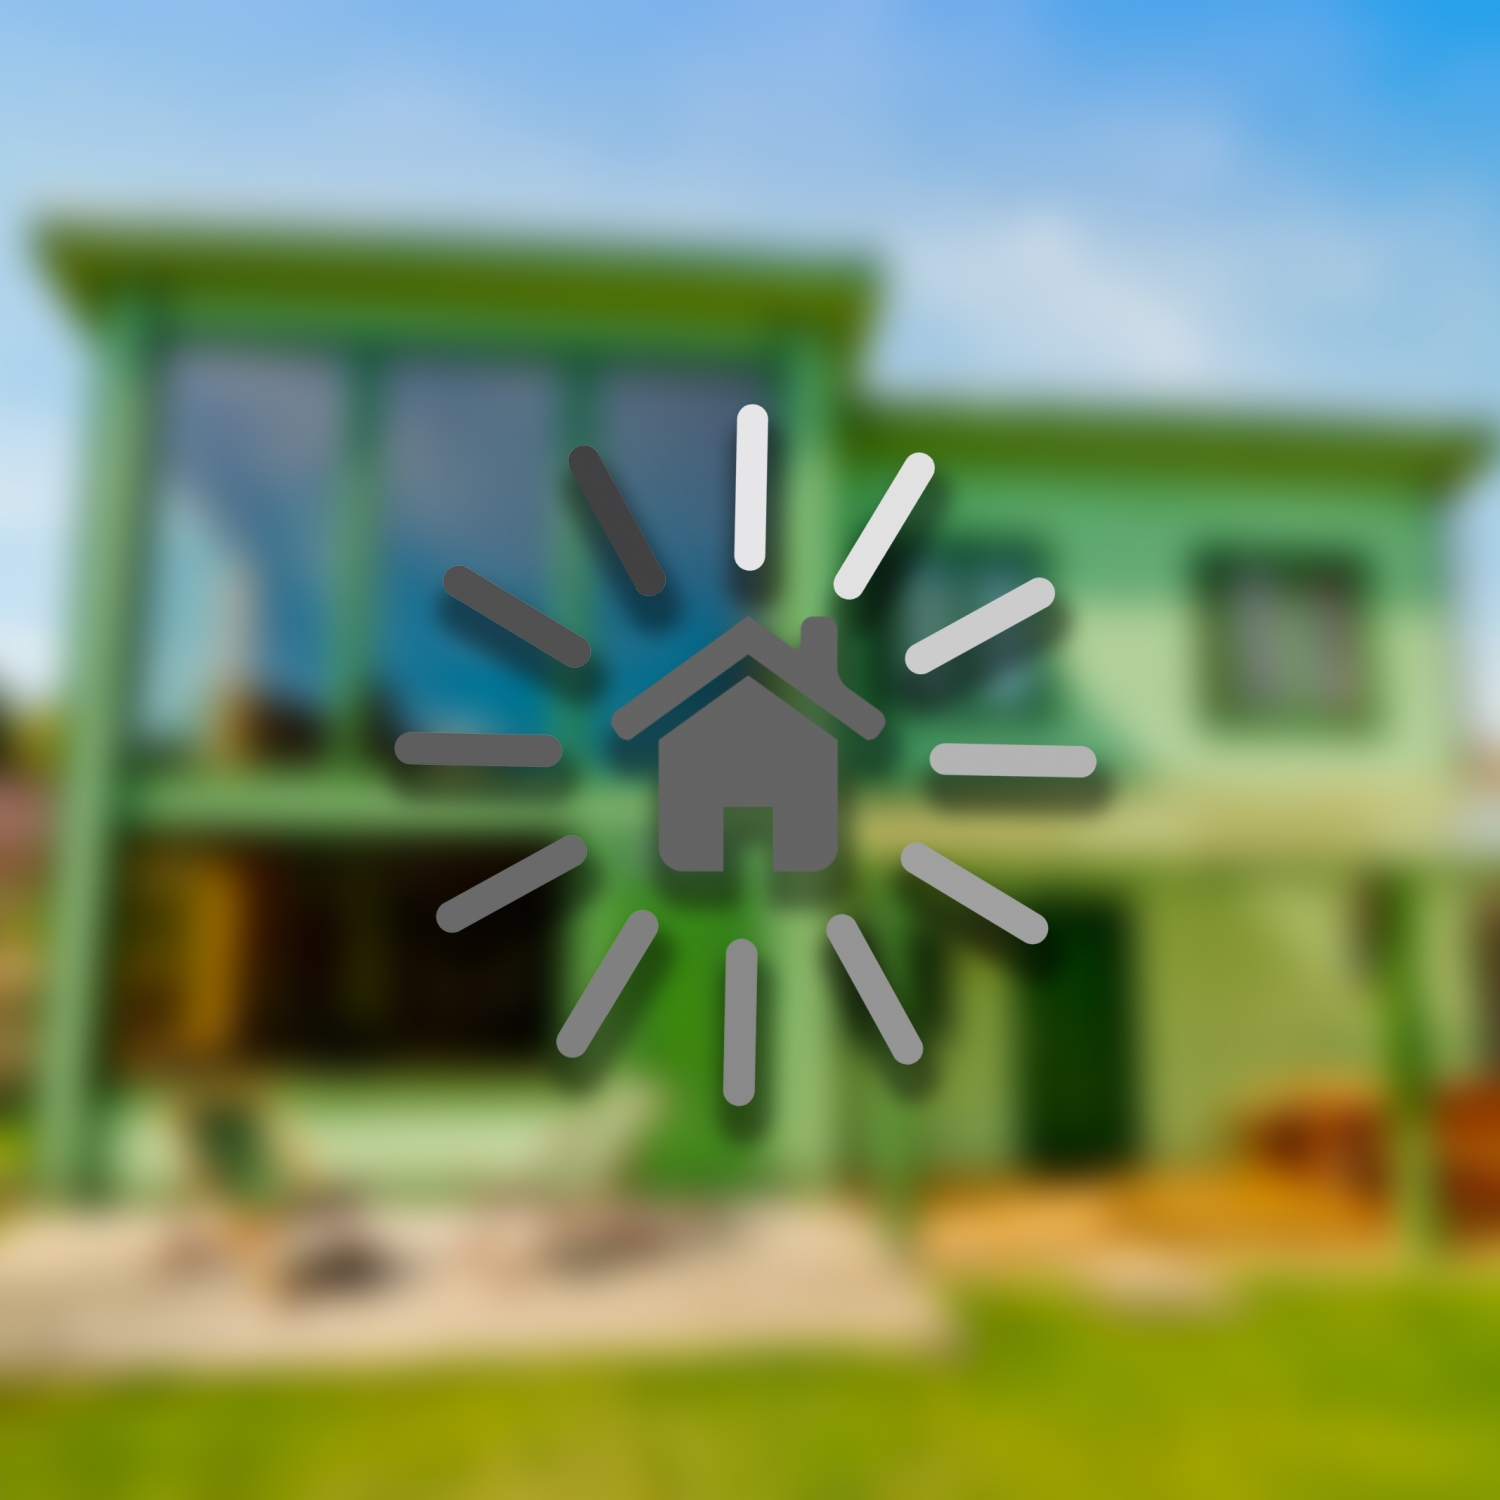 Loading bar circling around house against blurred out home